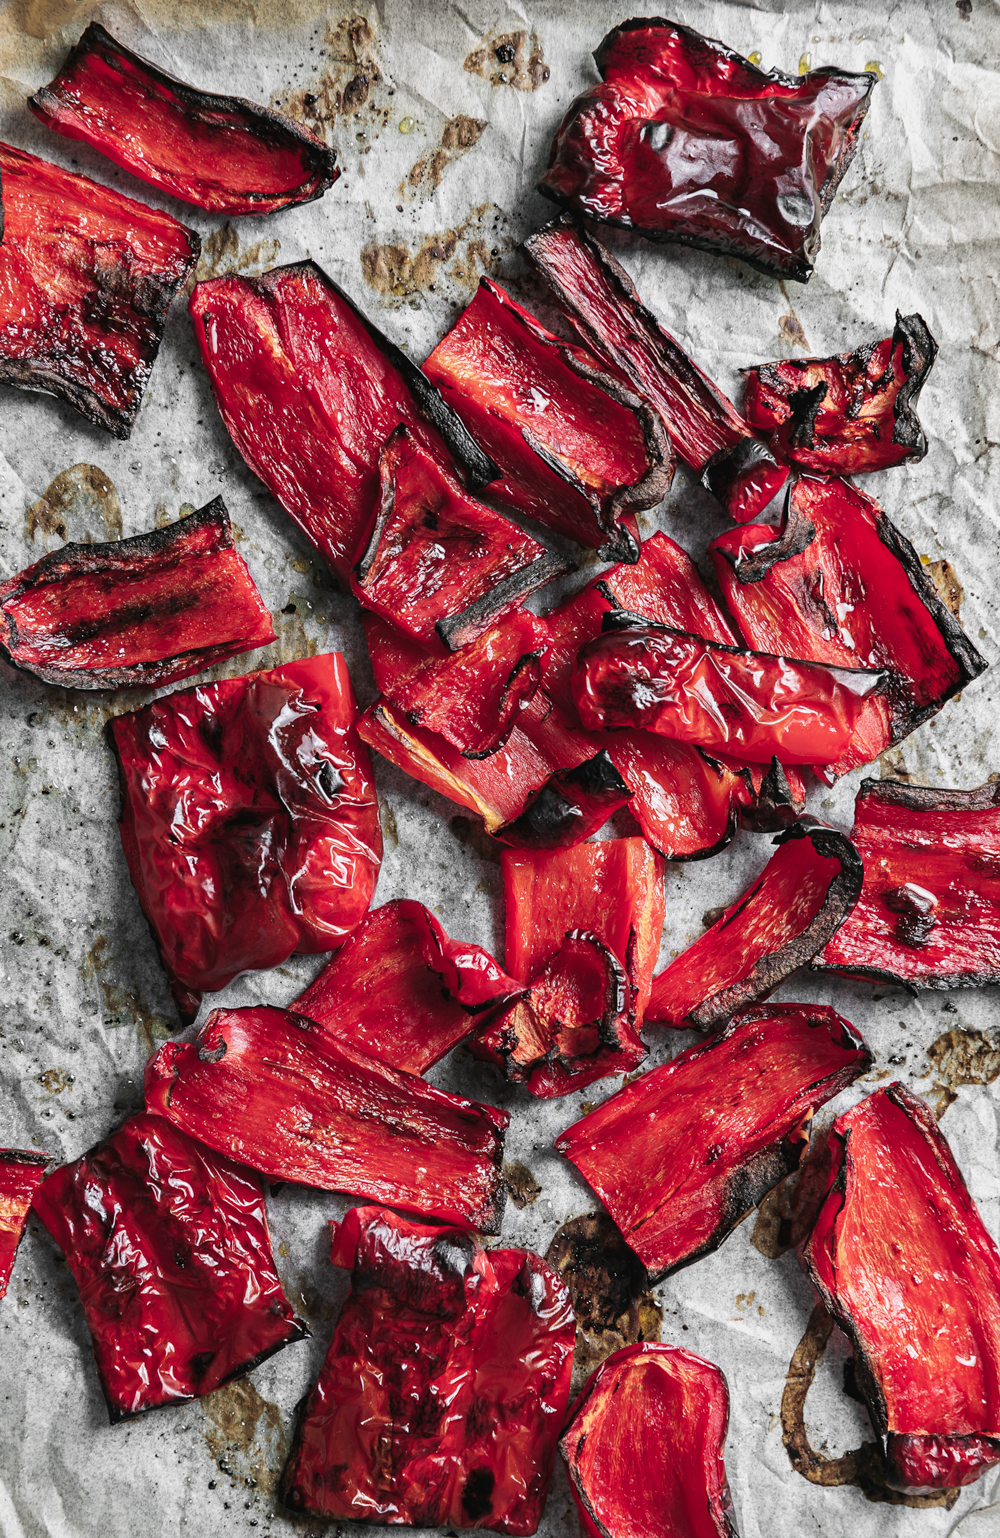 Roasted capsicum sitting on a baking tray